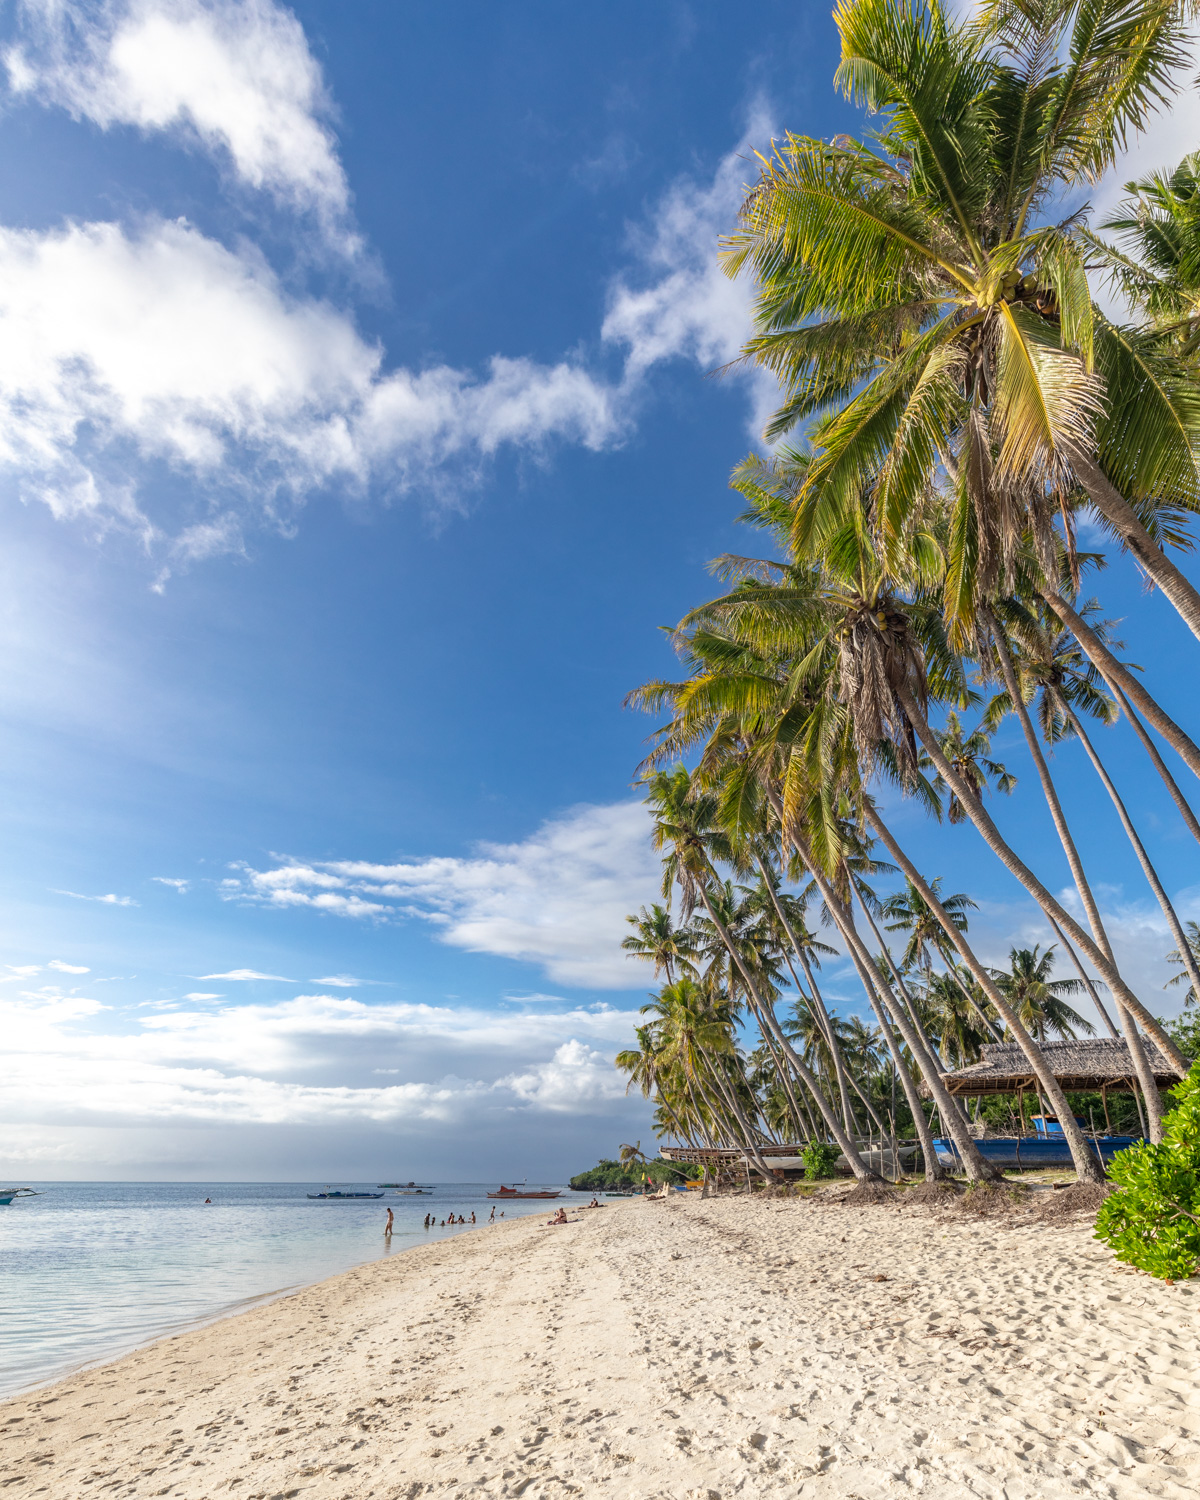 Paliton Beach on Siquijor Island, The Philippines